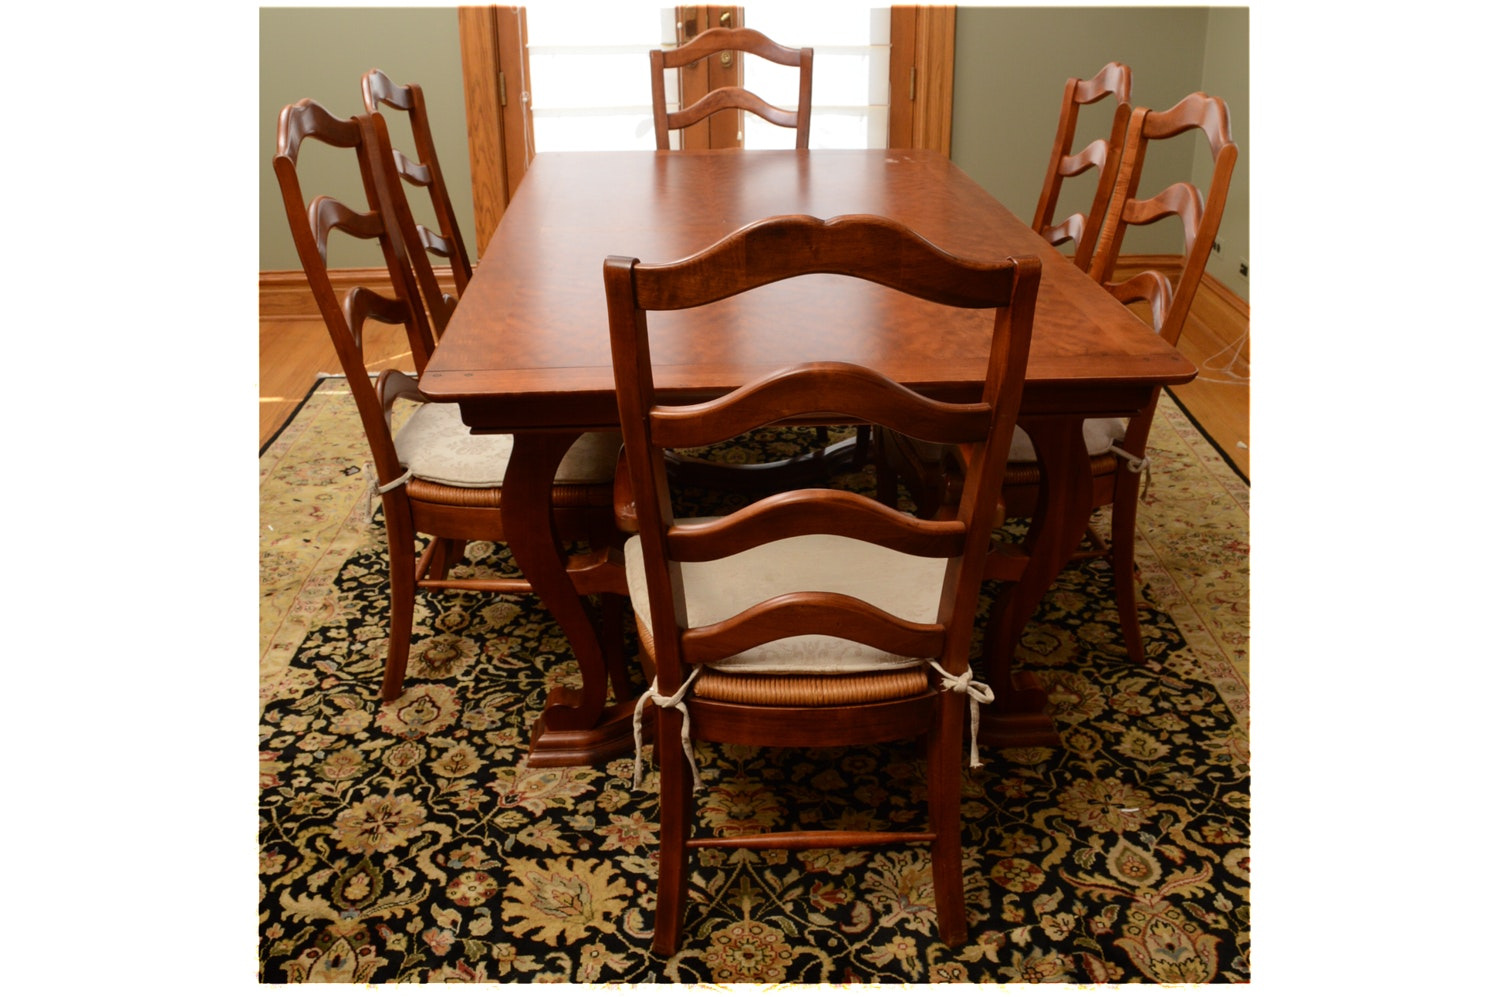 Contemporary Dining Table with Dining Chairs